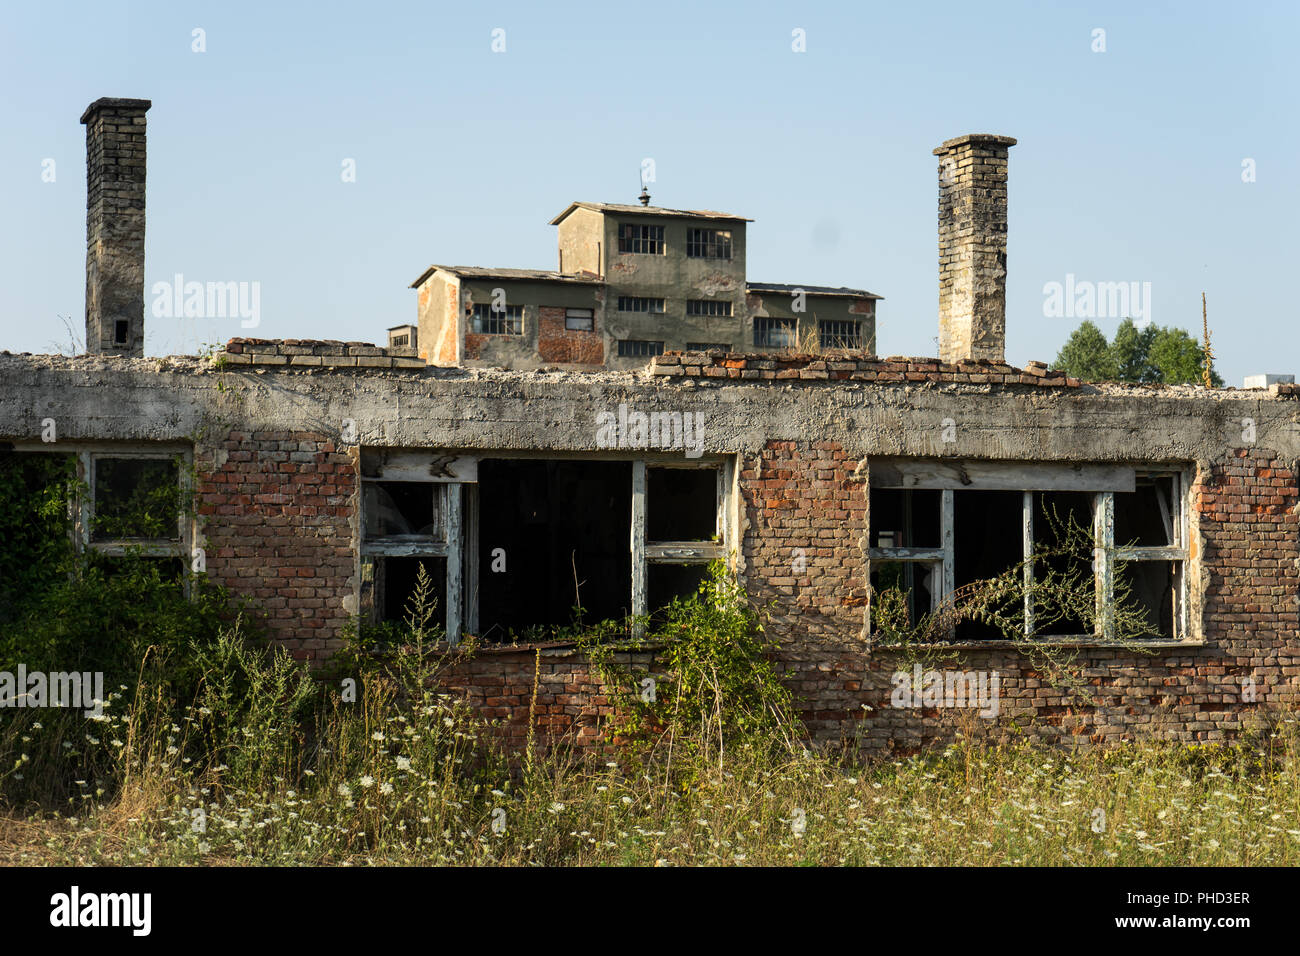 Destroyed Coal Mine from the Bosnian War, Bosnia - Stock Image